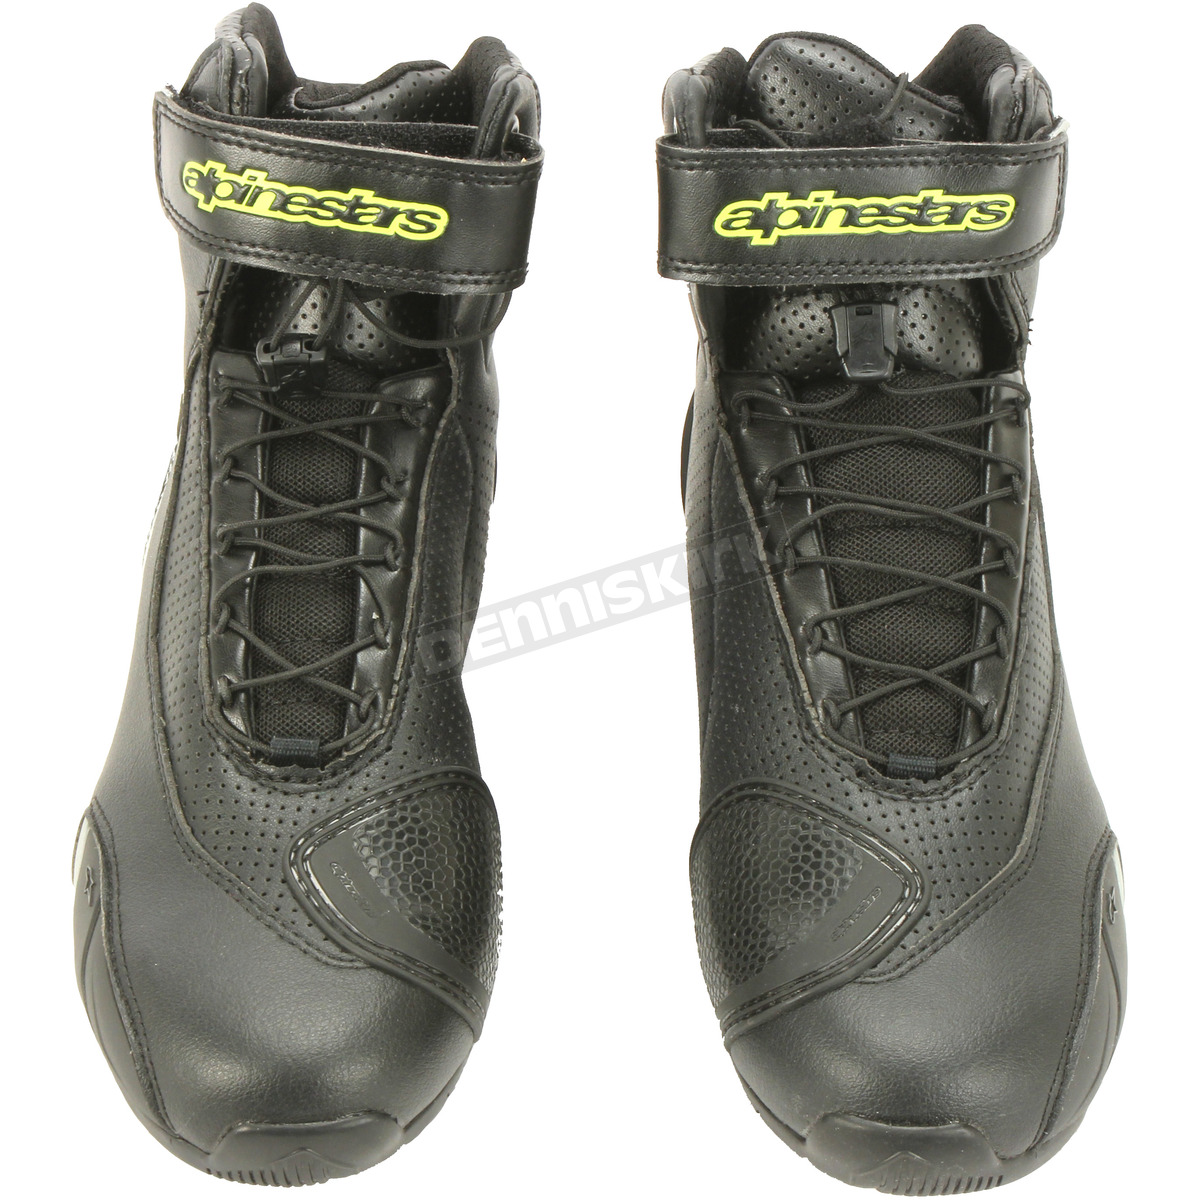 42 EU, Black Silver Yellow SP-1 v2 Vented Motorcycle Street Road Riding Shoe